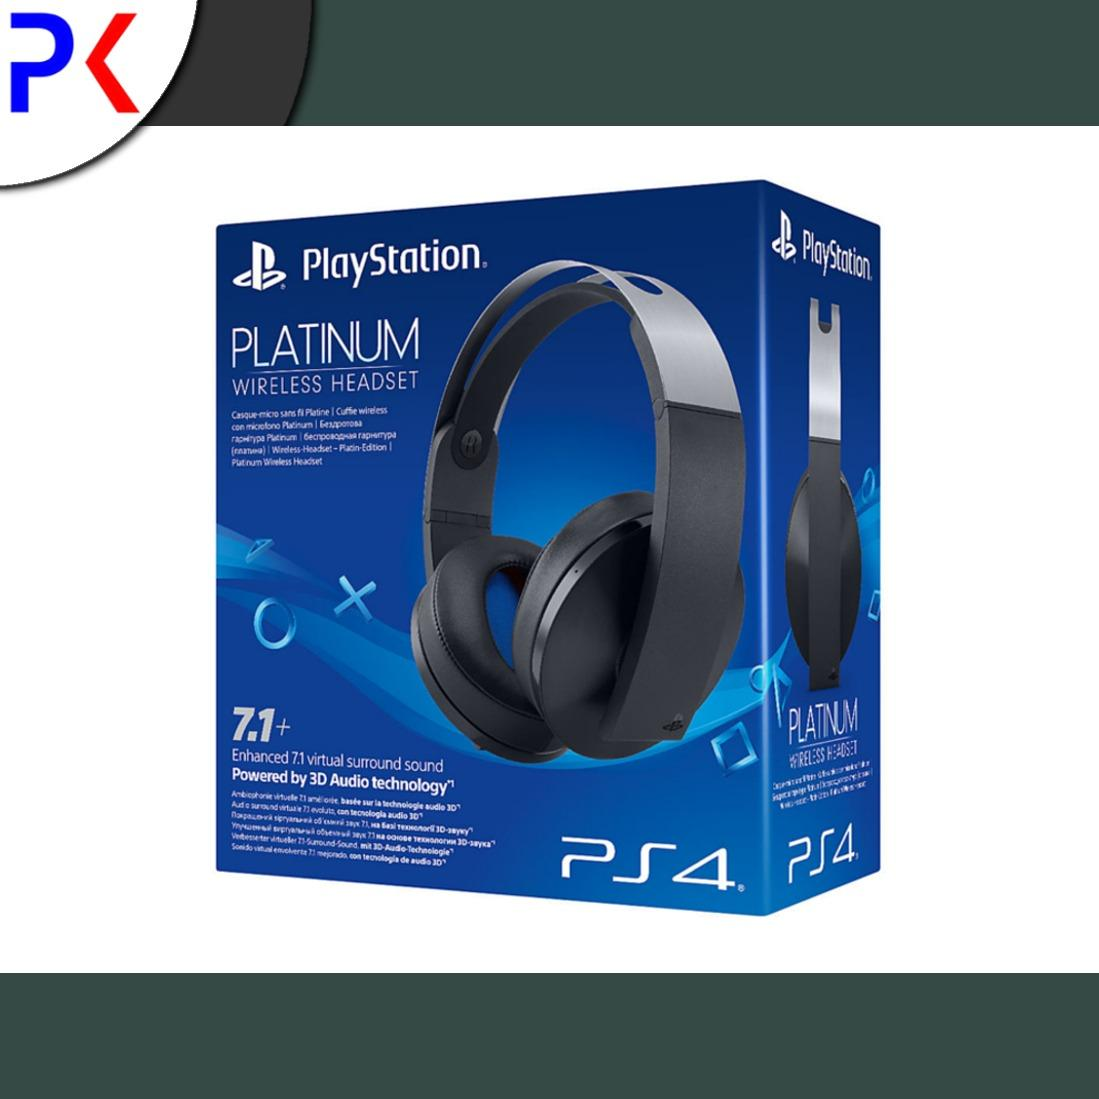 Sony Ps4 Platinum Wireless Headset Singapore